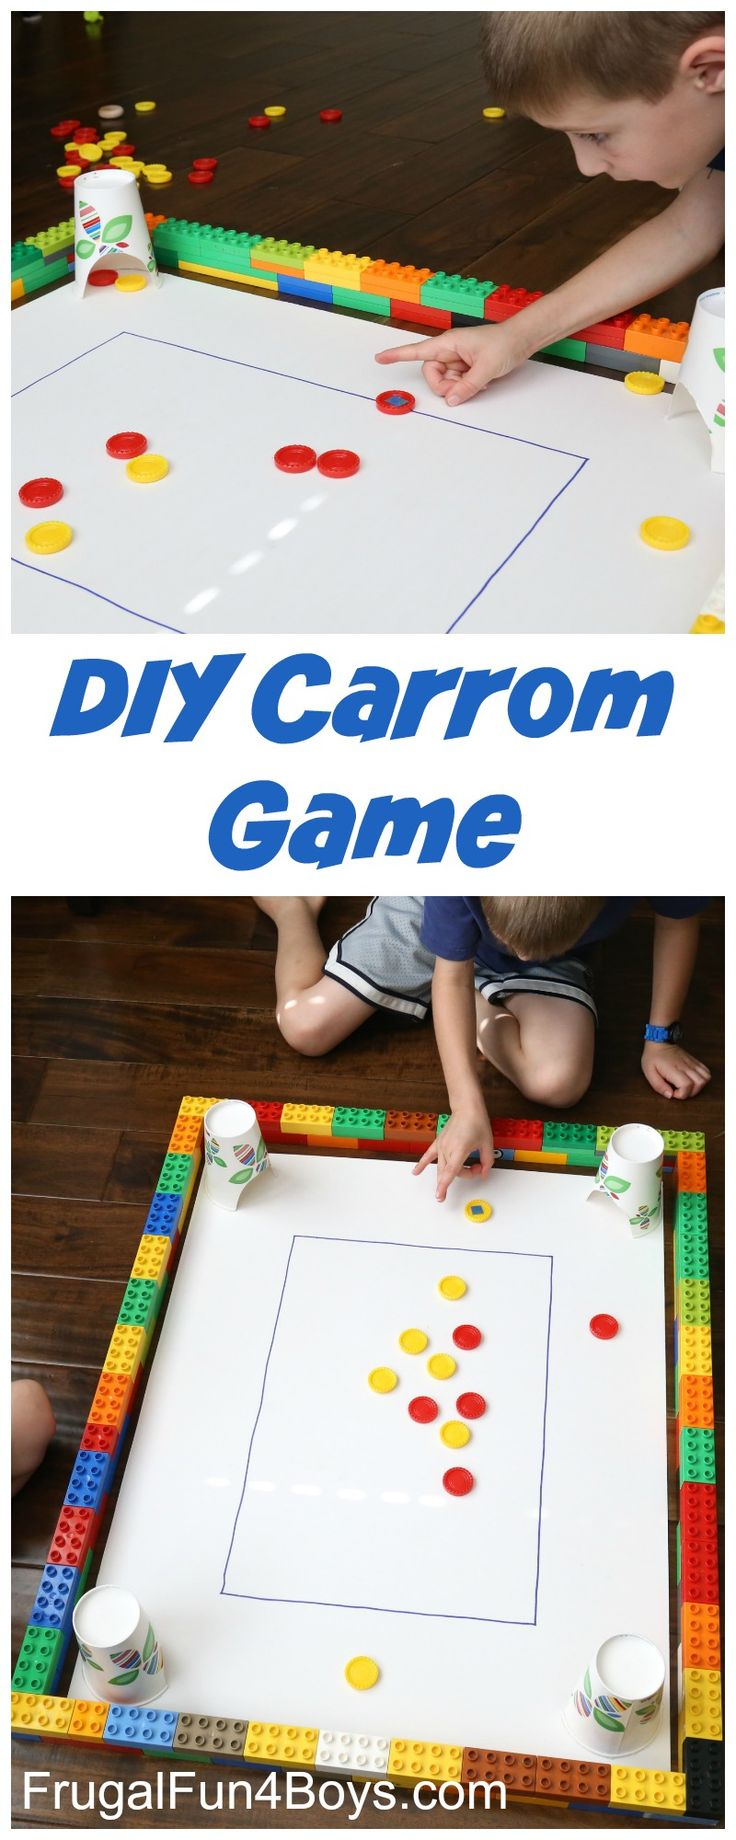 Homemade Carrom Game for Kids - Try to get the game pieces into the cups, similar to pool/billiards. Fun boredom buster!